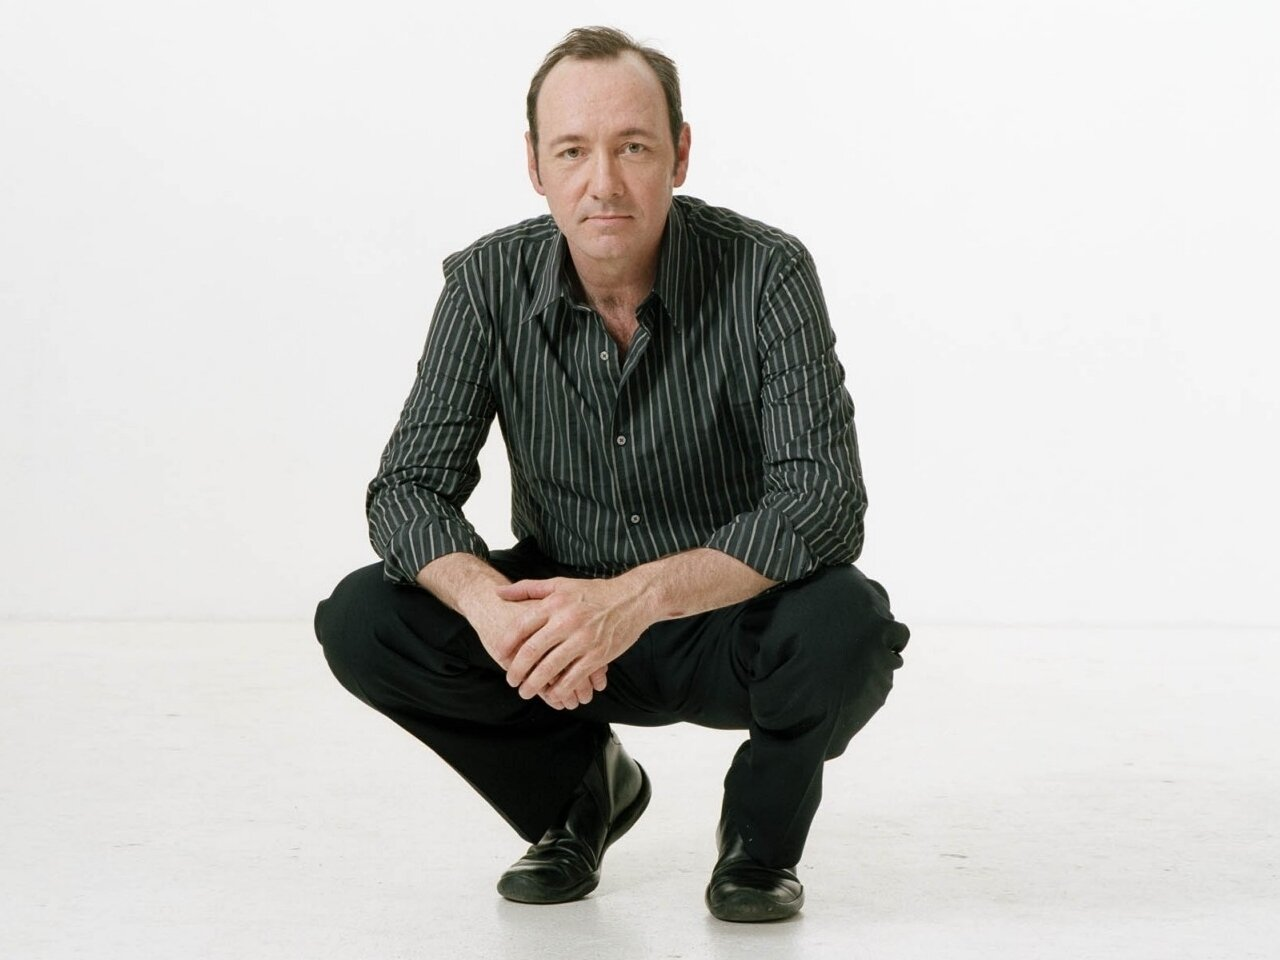 Kevin Spacey Wallpaper 12